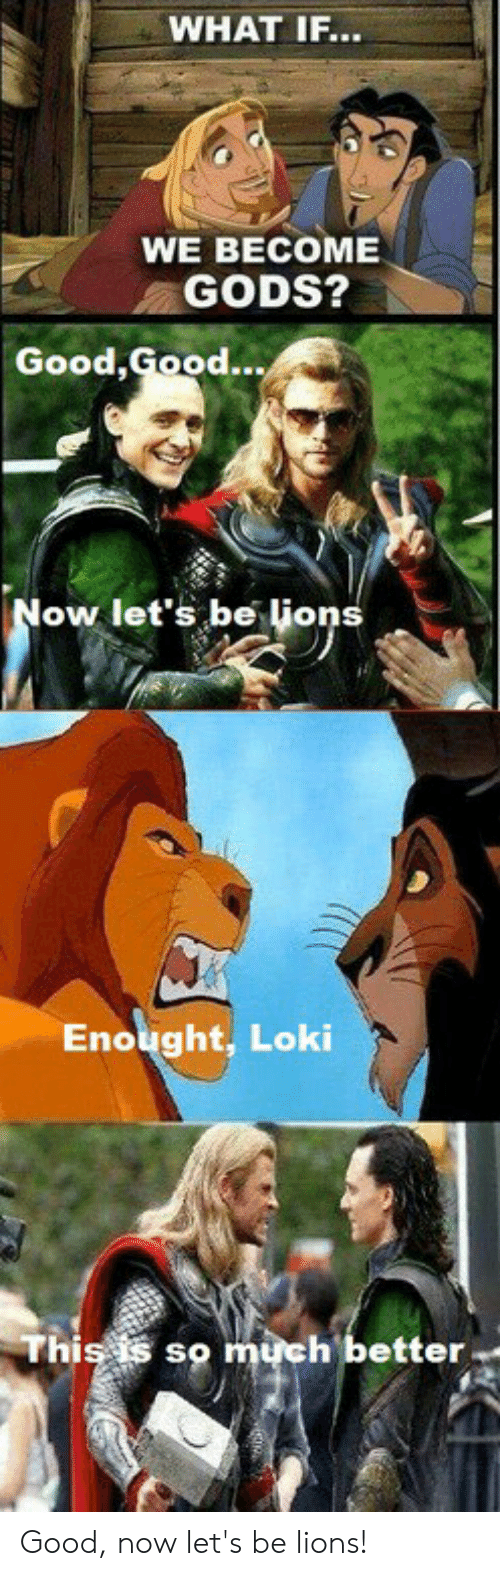 Good Good: WHAT IF...  WE BECOME  GODS?  Good,  Good...  ow let's be lione  Enought, Loki  Thiss  so much better Good, now let's be lions!